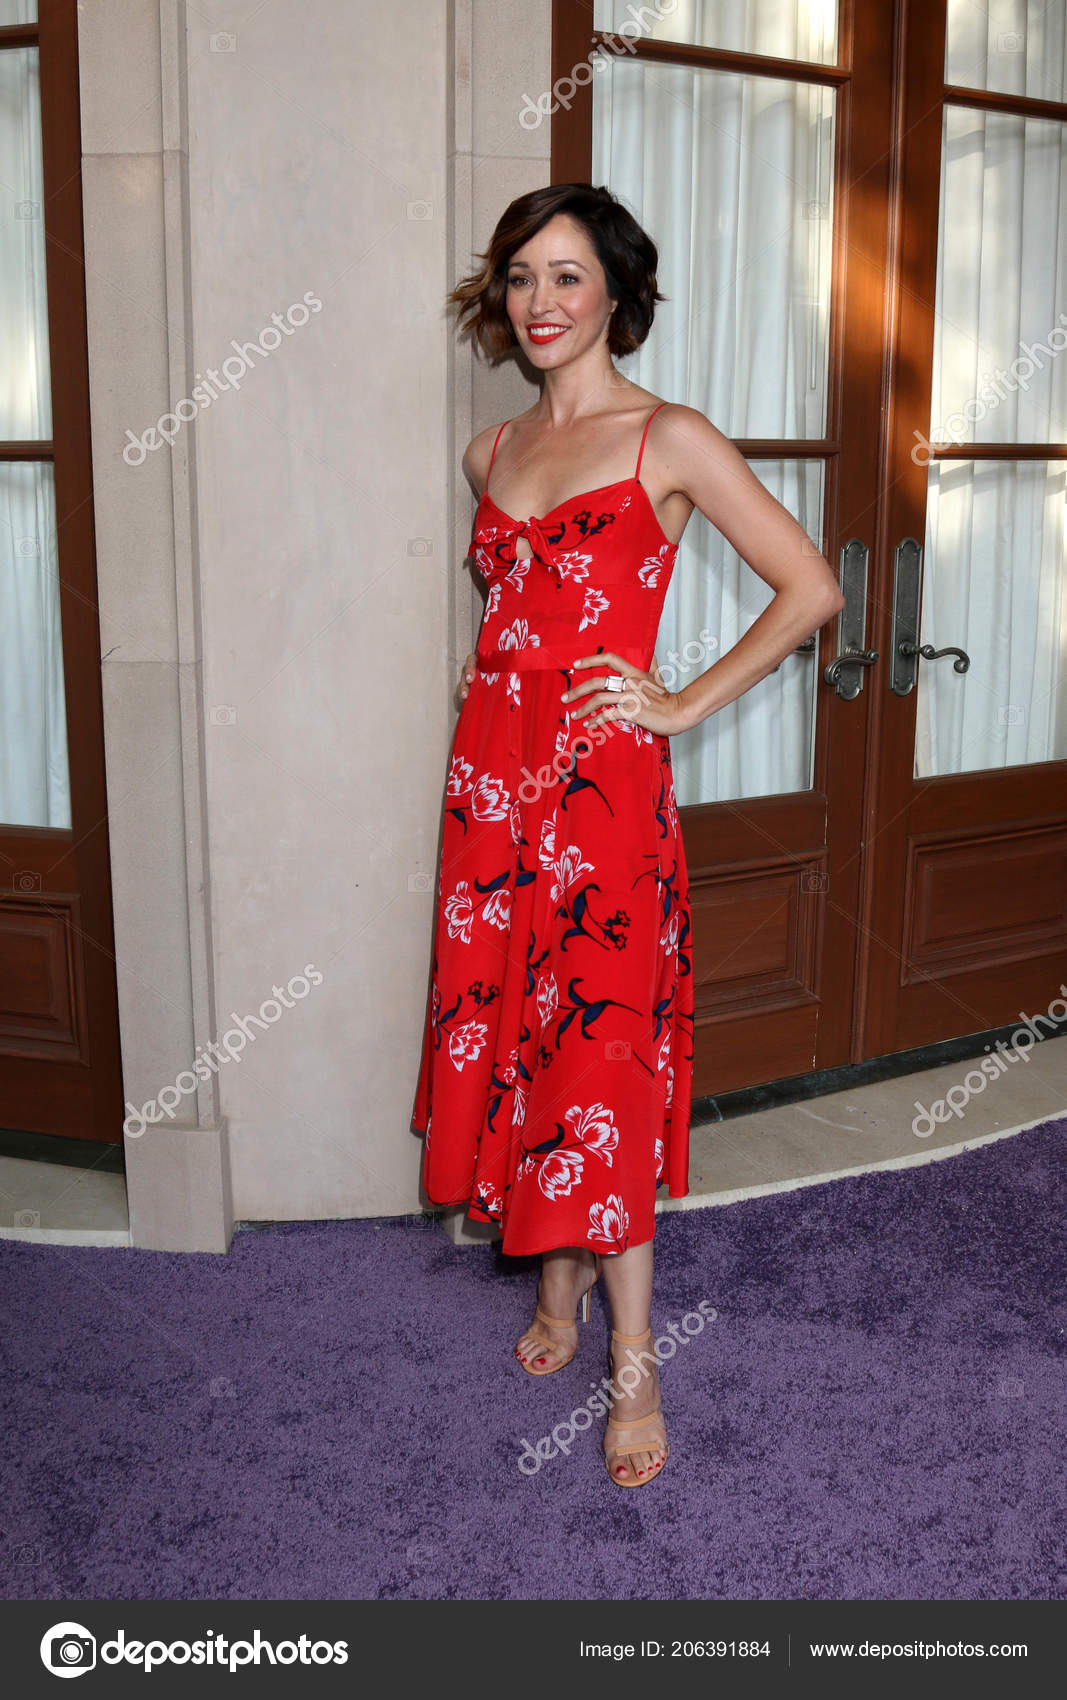 Autumn Reeser Autumn Reeser new pictures